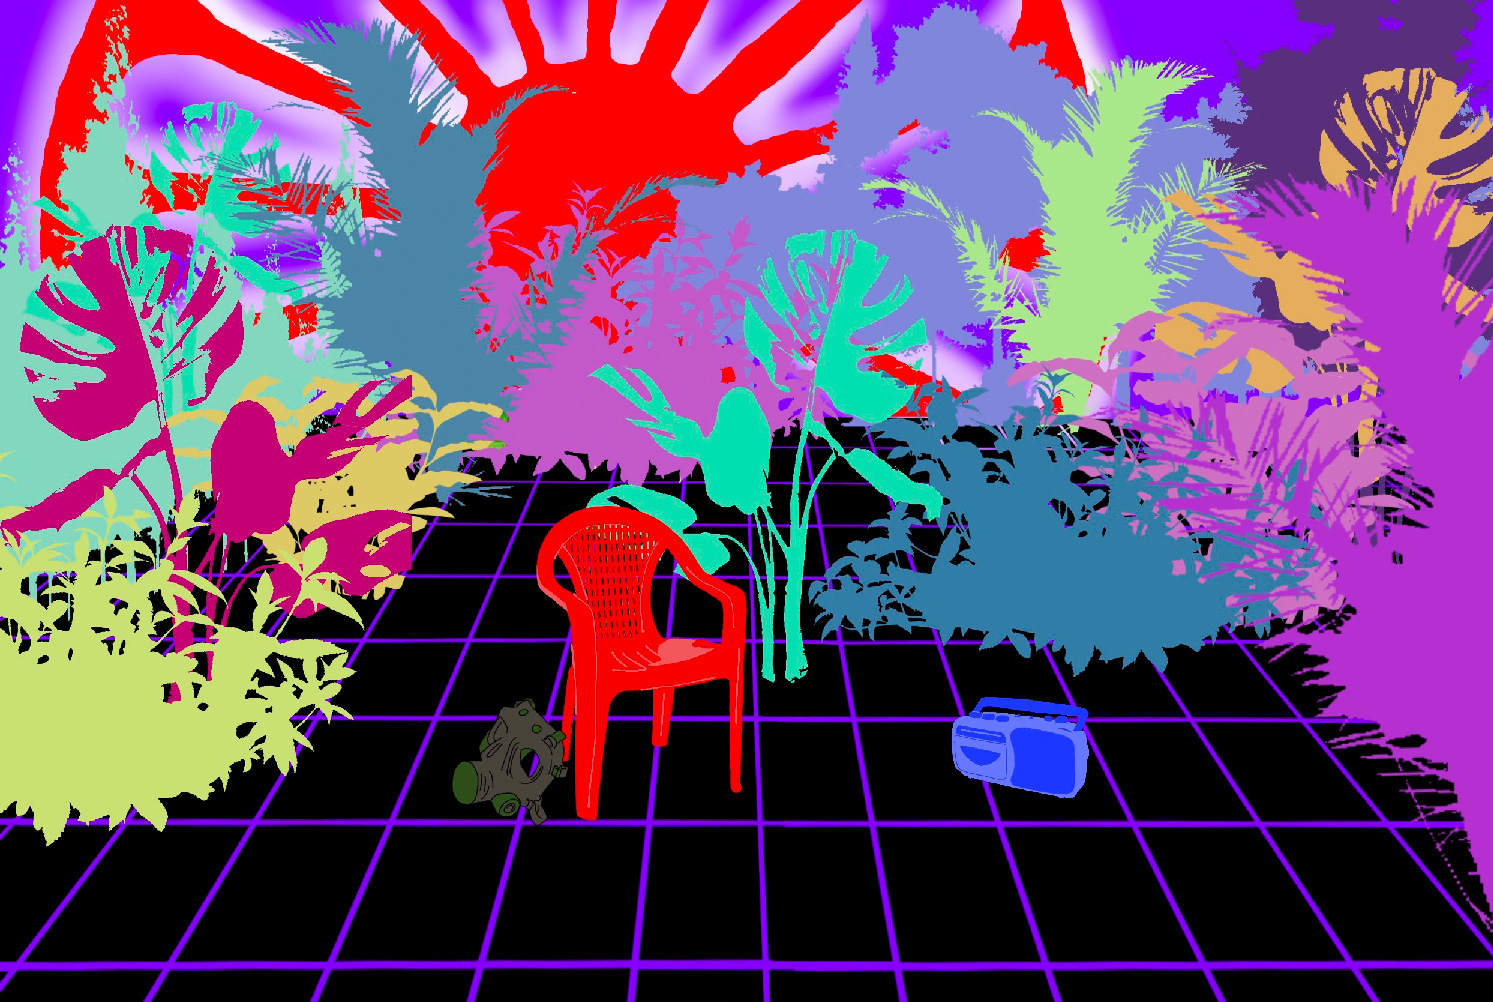 """Illustration for the program """"Possilbe Utopias"""". Digital drawing. Neon colors. Colorful plants. A red plastic chair, a violet radio and dark grey gas mask in the foreground. Red sun taken from the Roma emblem is glowing in the background."""